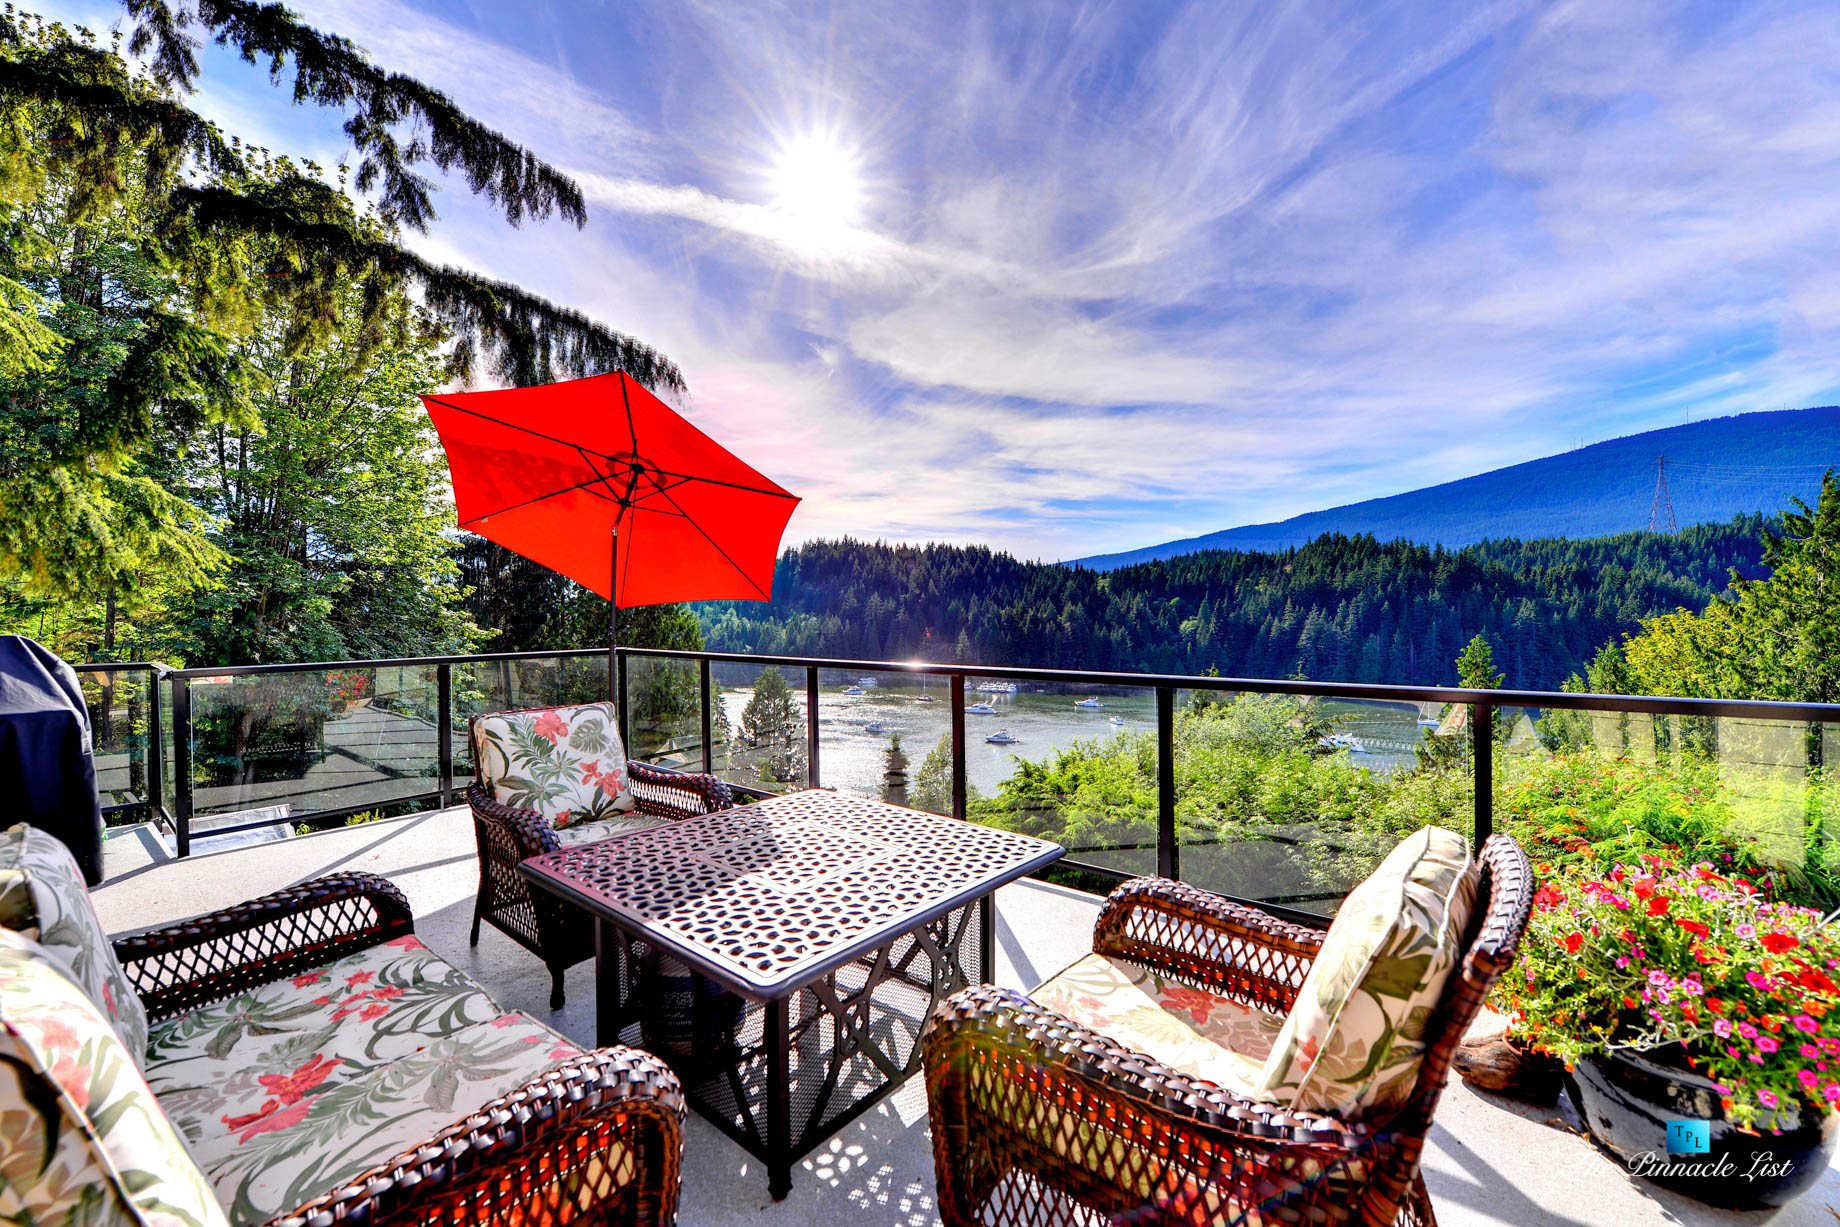 3945 Bedwell Bay Rd, Belcarra, BC, Canada